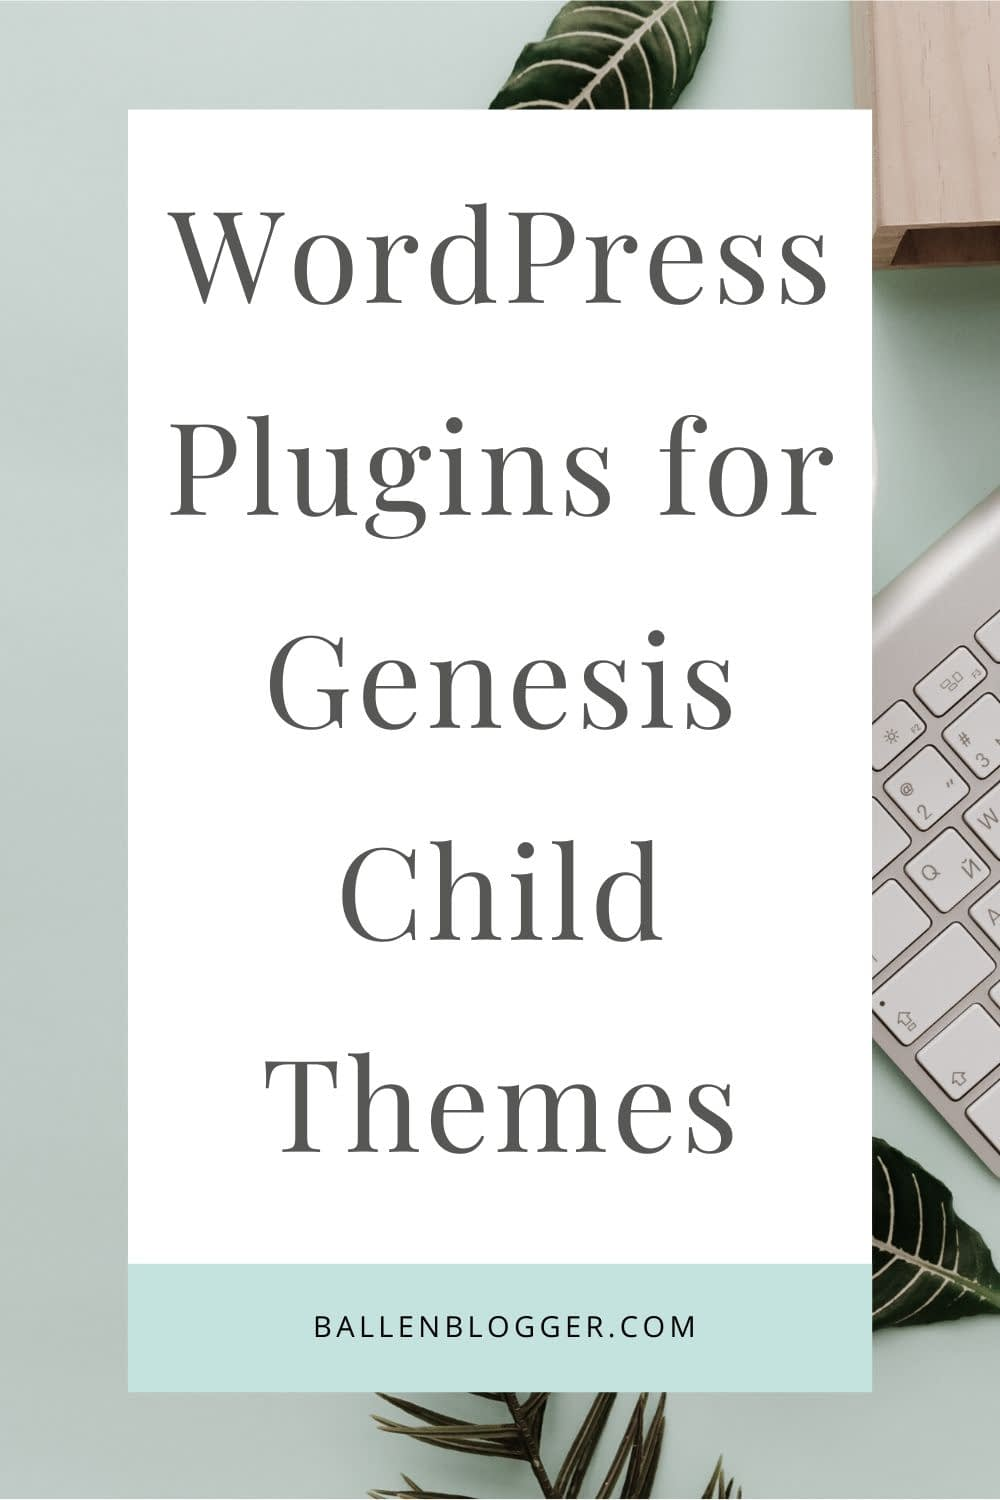 WordPress Plugins add functionality to a WordPress Website. Many are free, some have upgrade options after you upload the plugin. Be careful about adding too many plugins as they can slow down your website. Here is a list of Genesis Plugins that were created to work with StudioPress Themes.